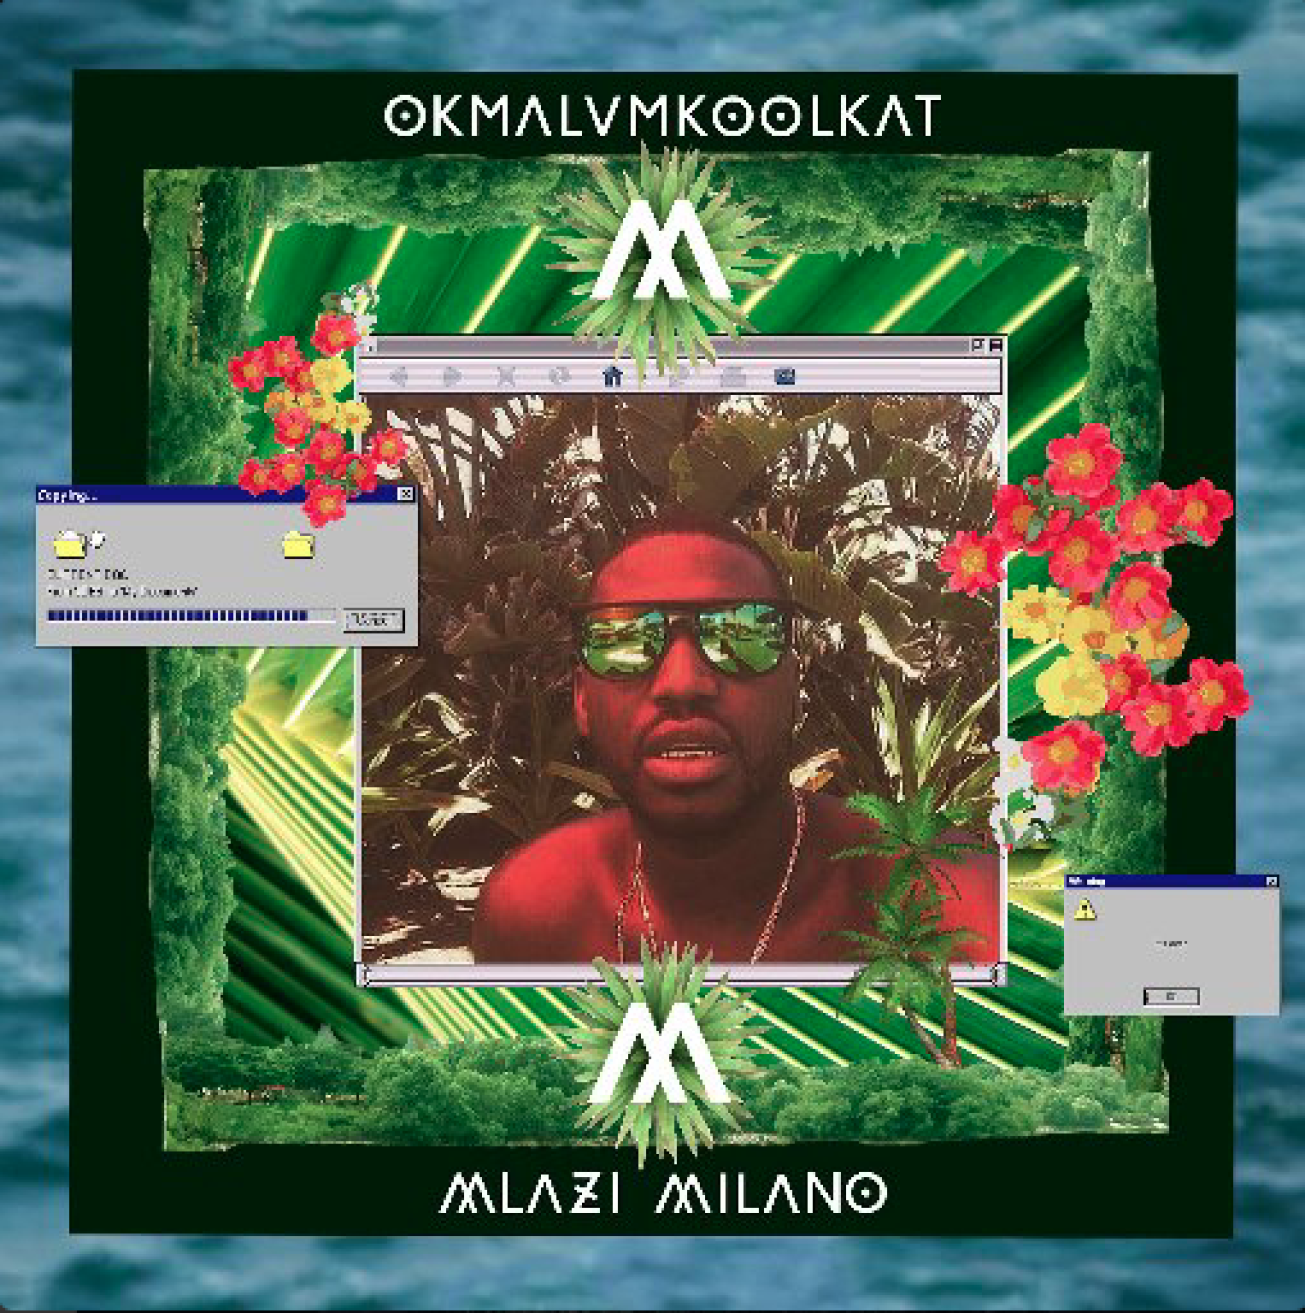 Lyrics: Okmalumkoolkat- Gqi Lyrics